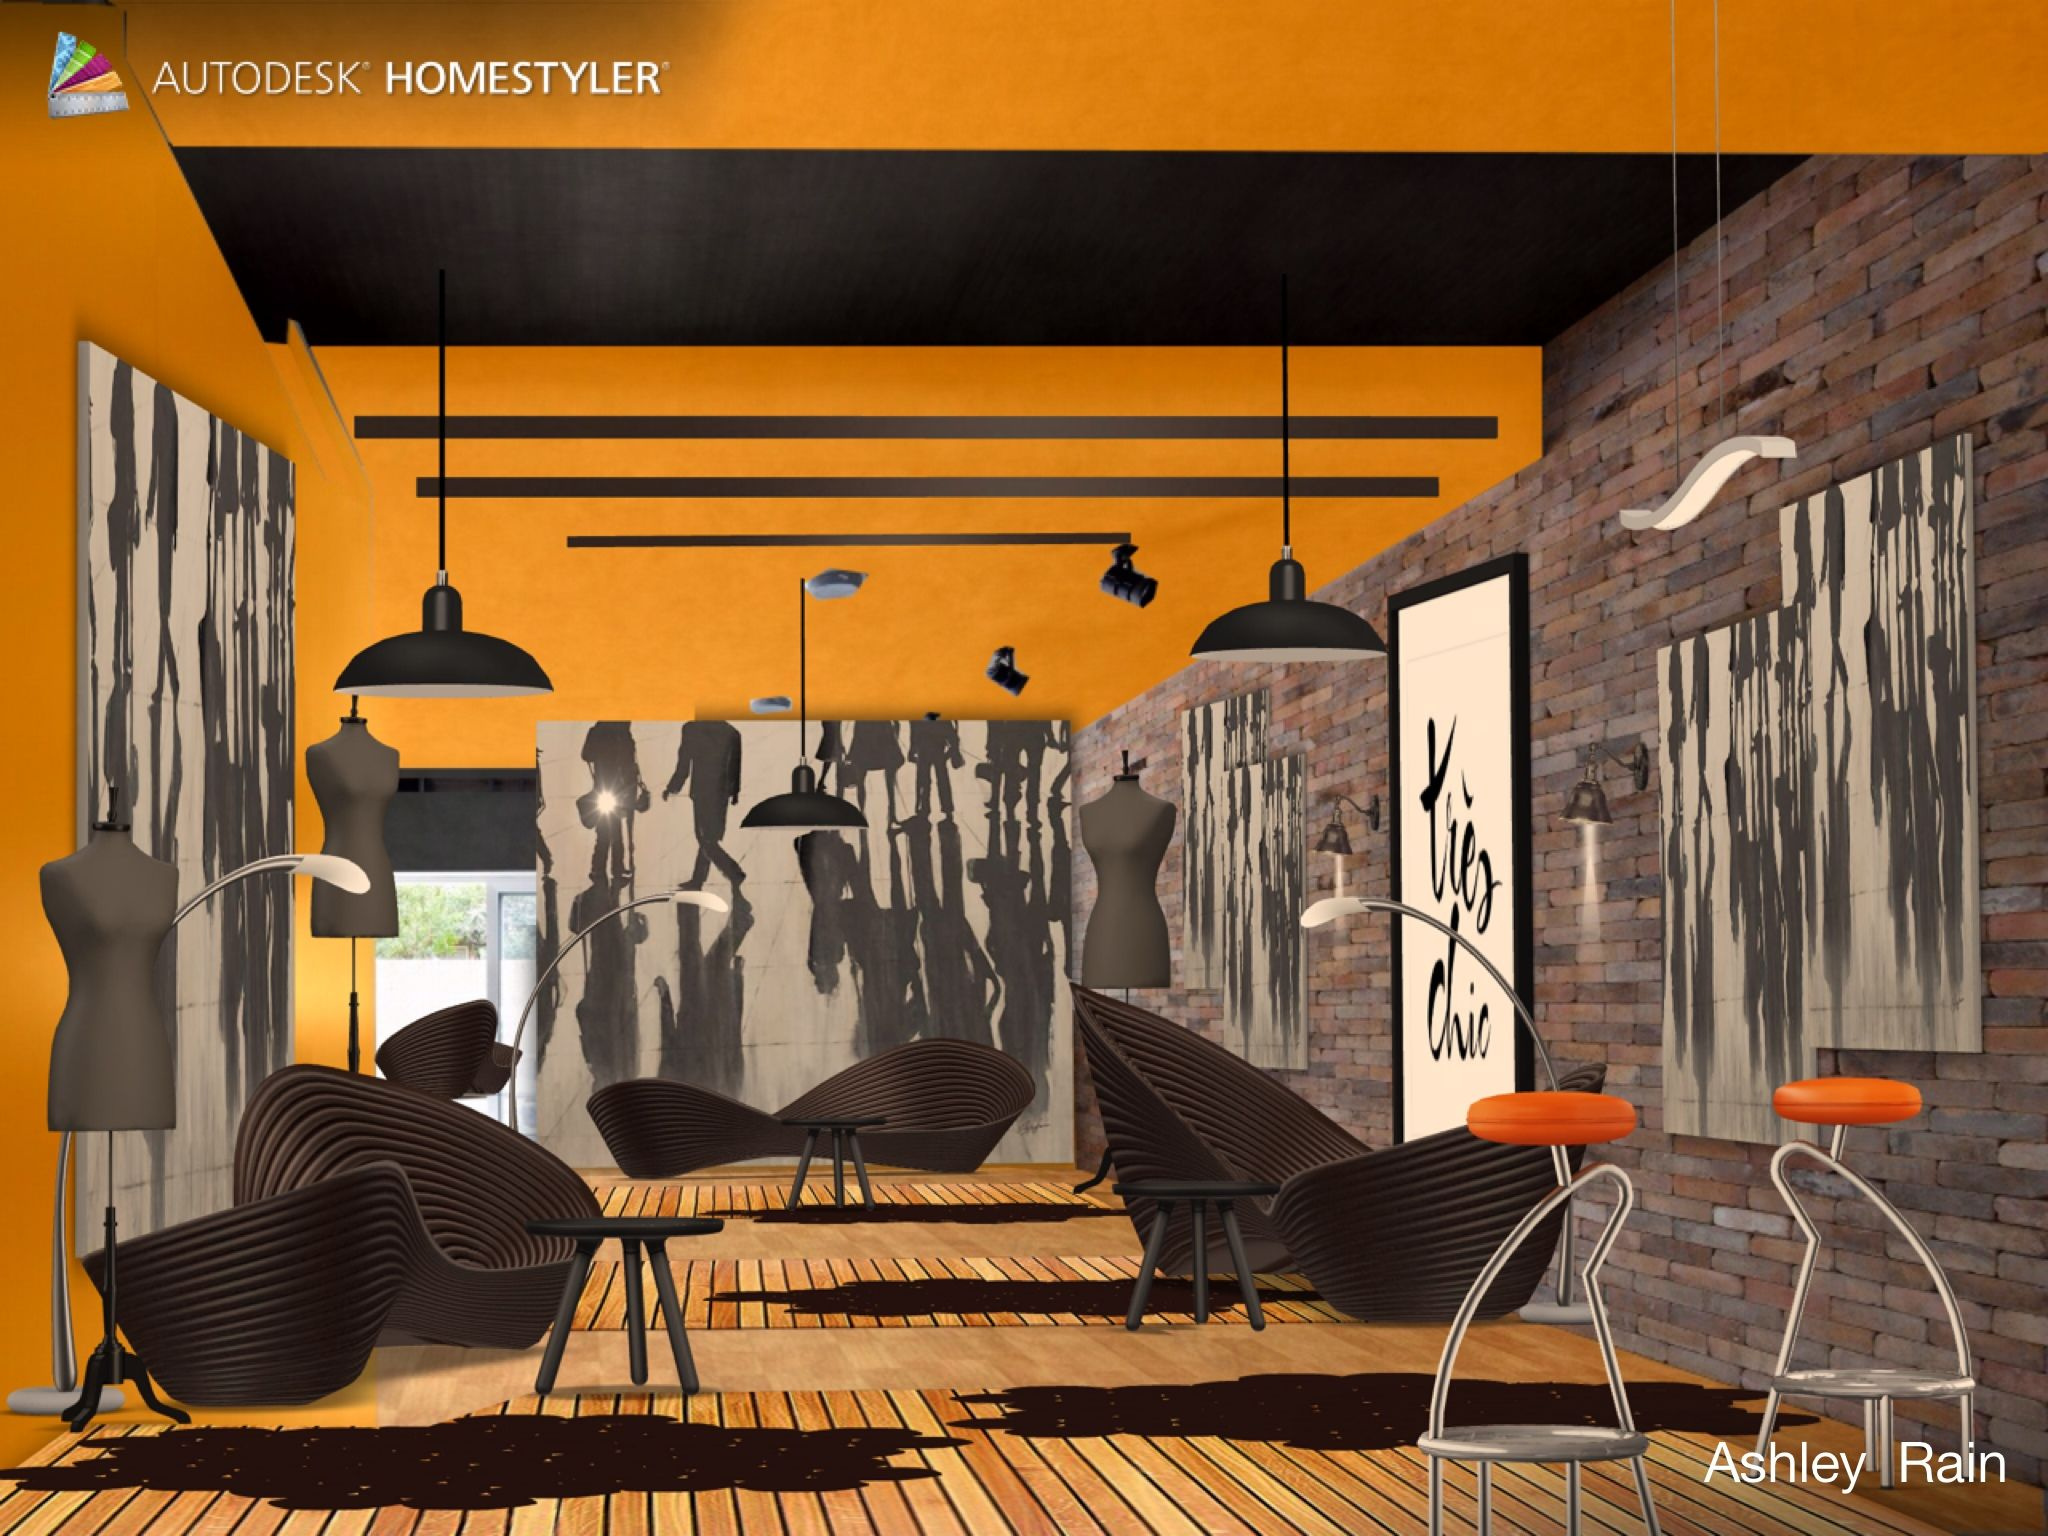 """Check out my #interiordesign """"Tres Chic Wi-Fi Coffe House"""" from #Homestyler http://autode.sk/1ghns0A"""